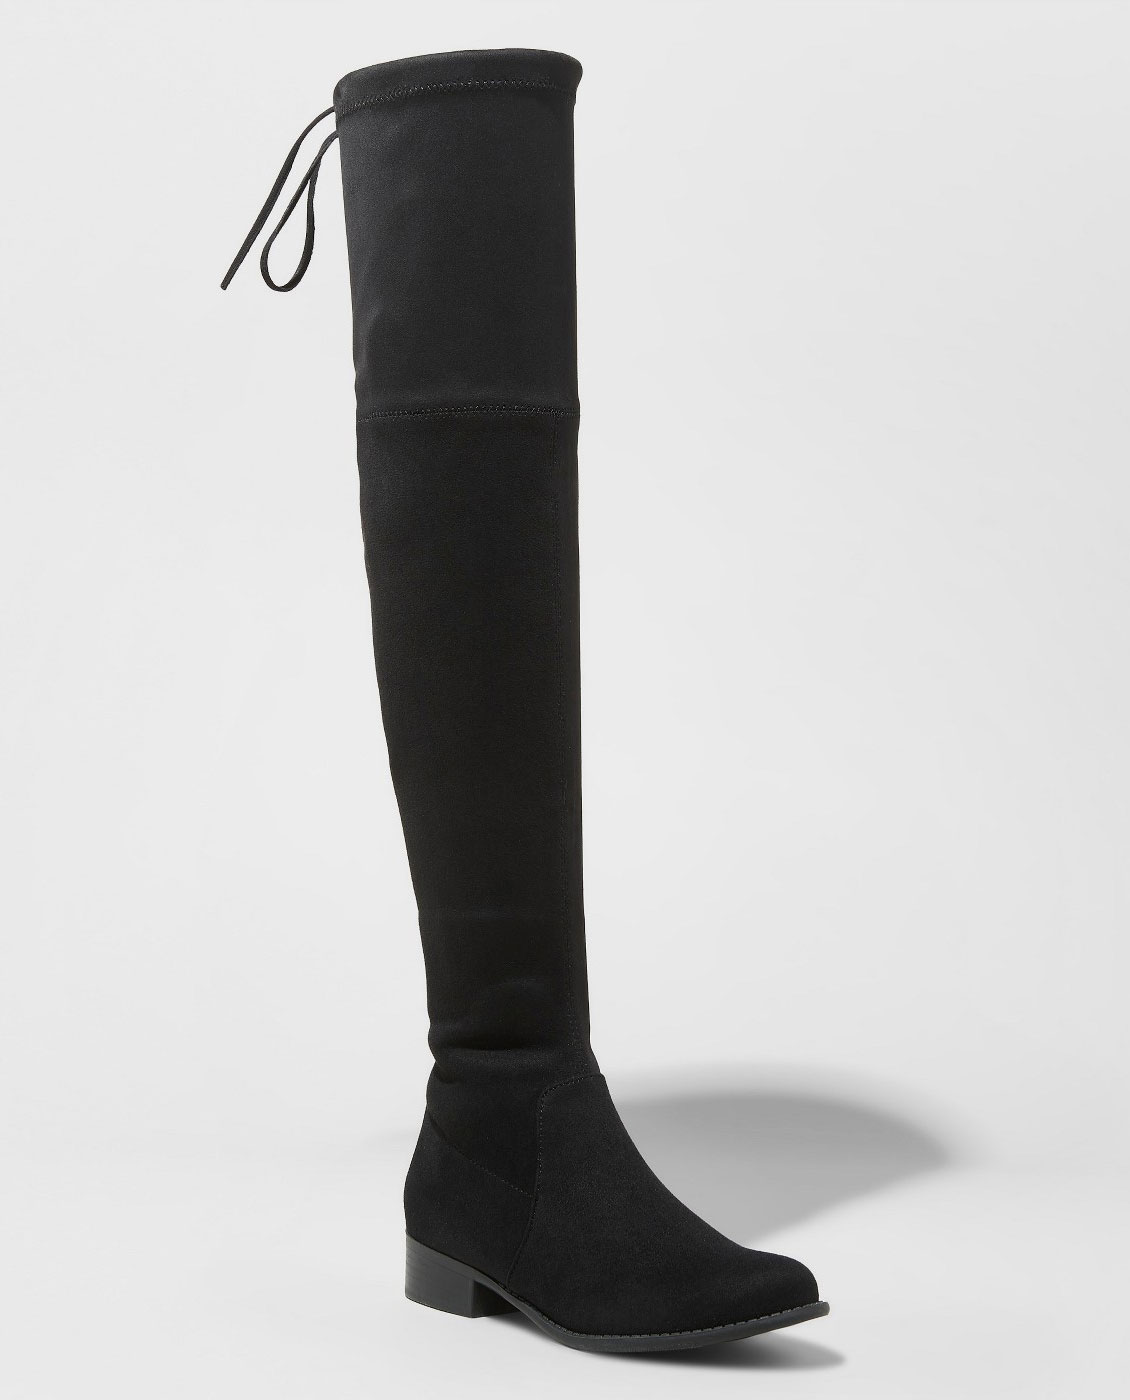 A New Day Over-the-Knee Boots     $39.99